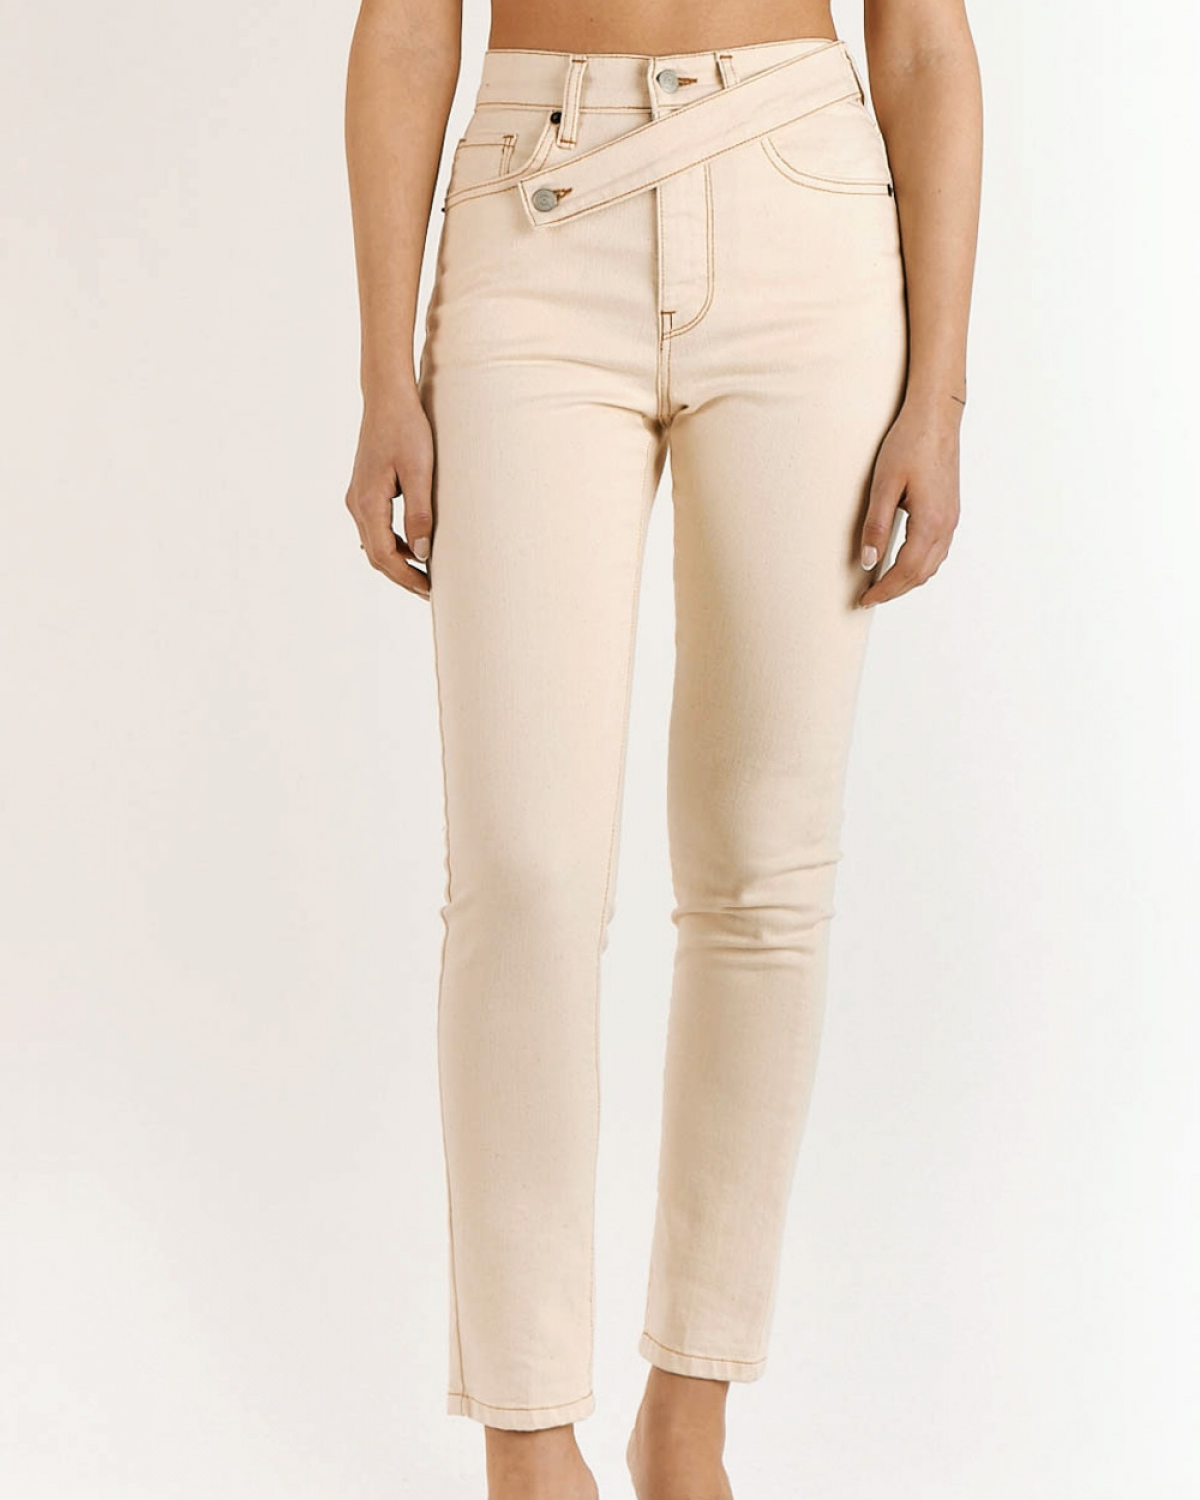 Kate Cream Reworked Jeans